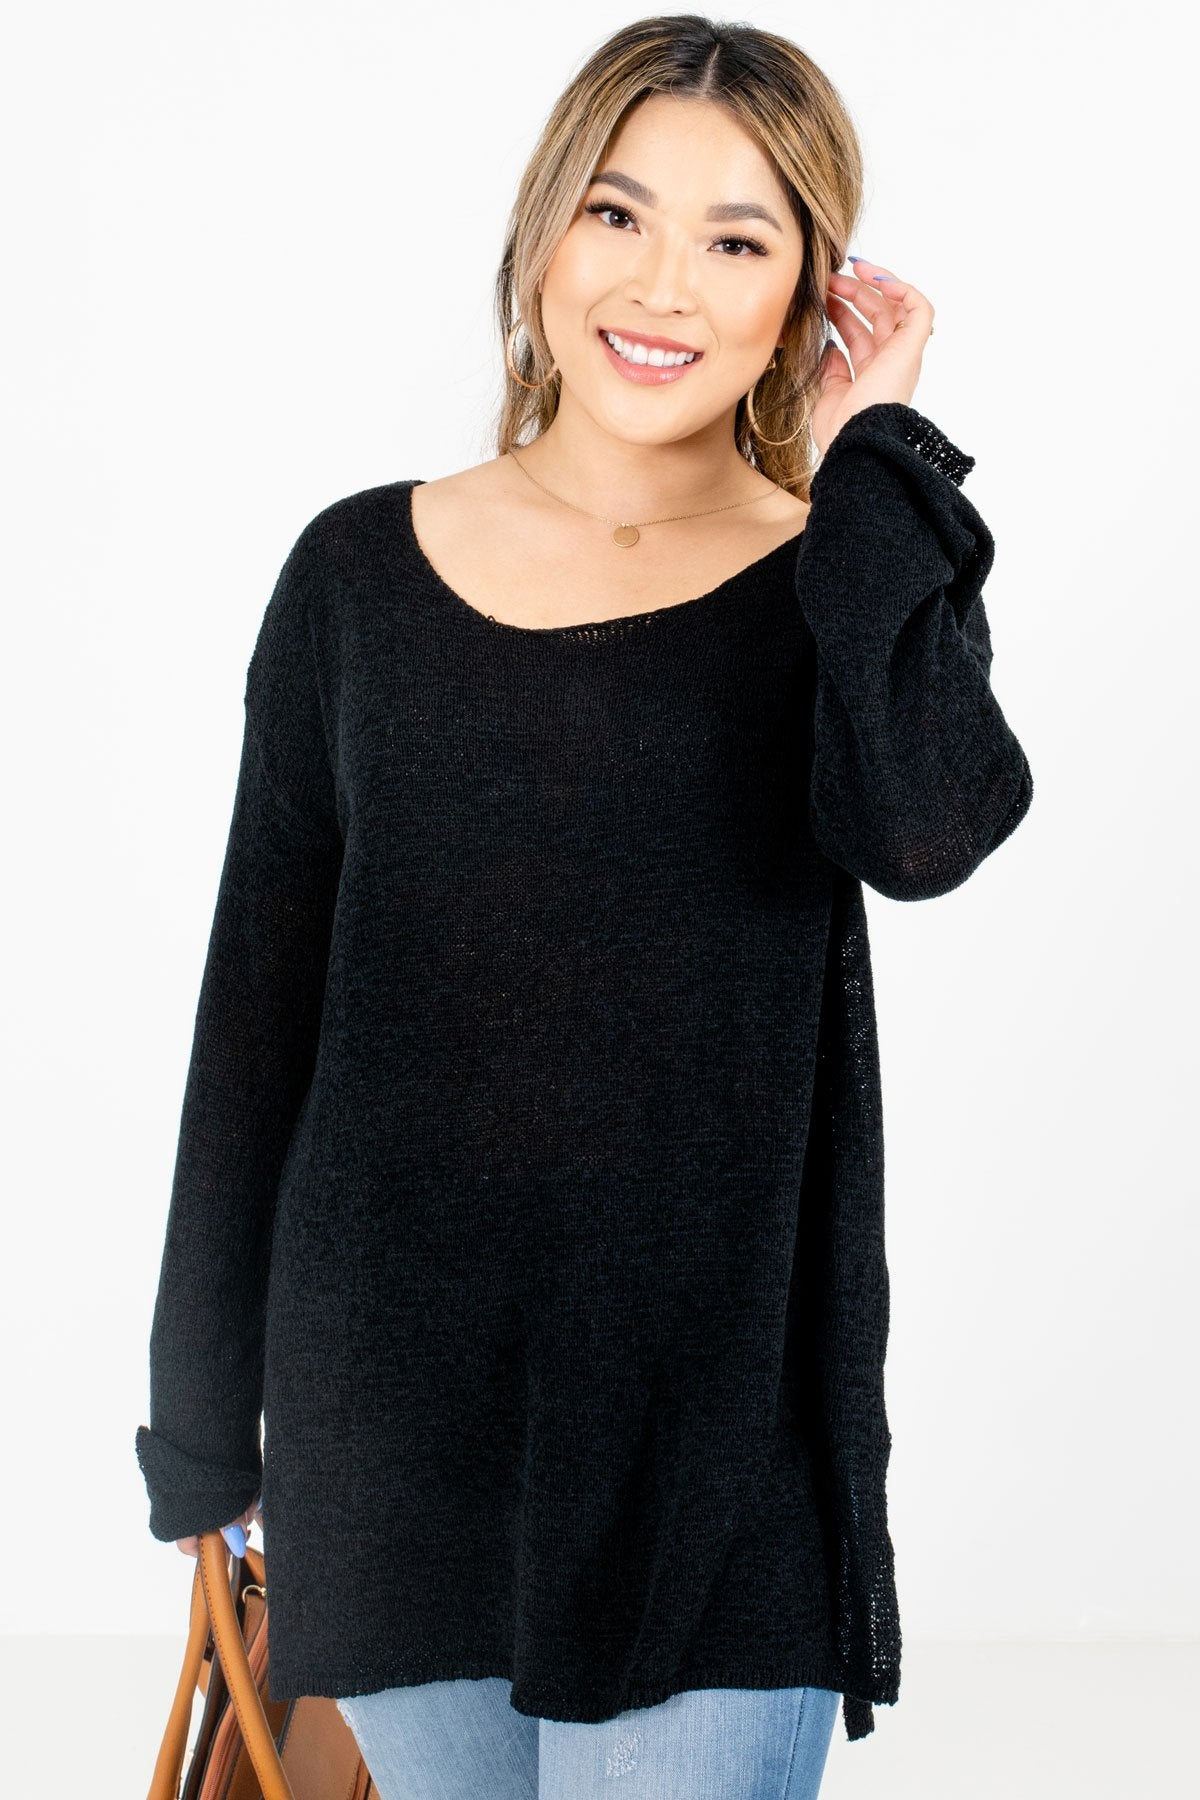 Black High-Quality Knit Material Boutique Sweaters for Women